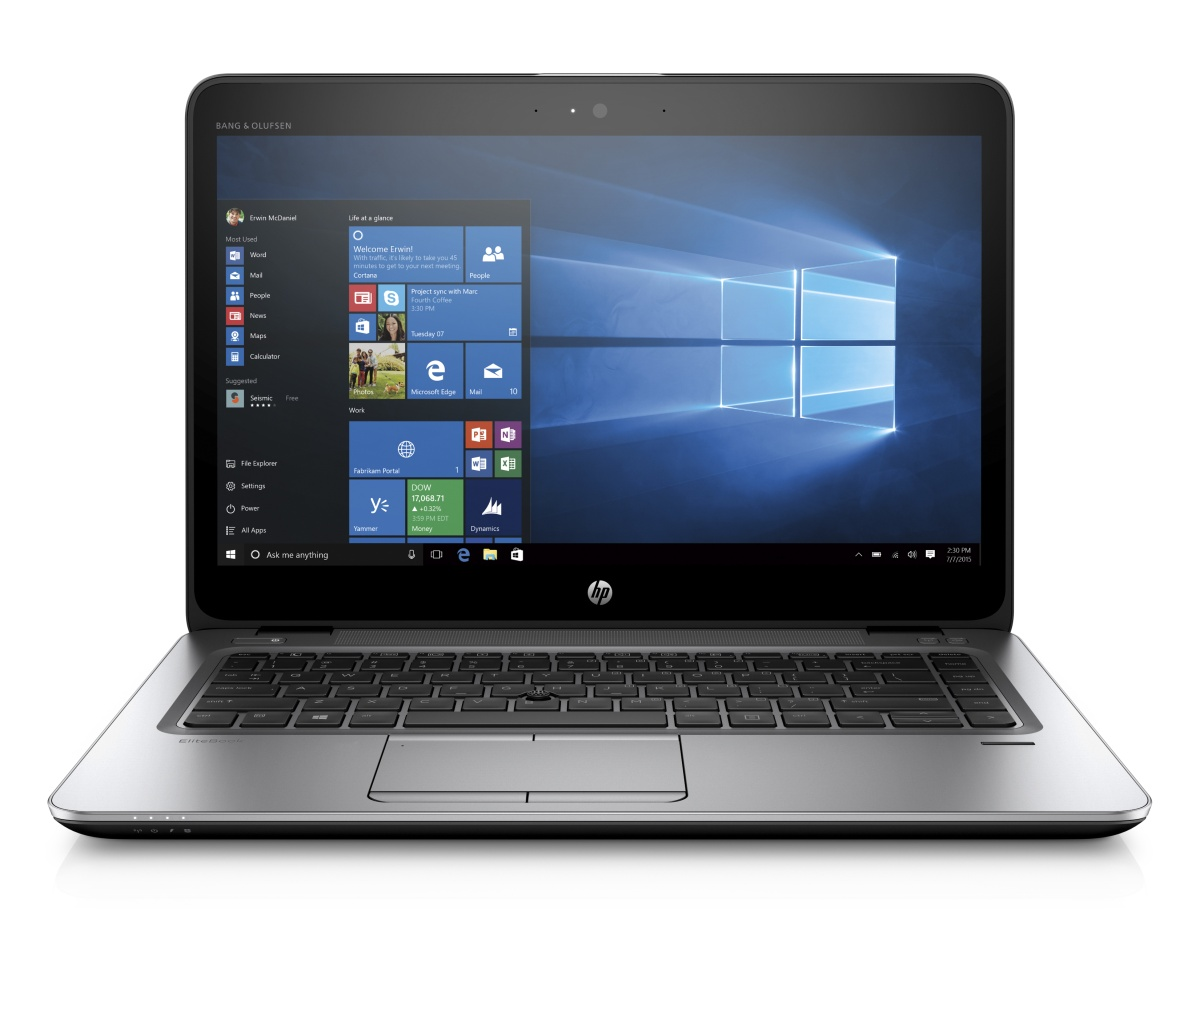 HP EliteBook 840 G3 i5-6200U 14 FHD CAM, 4GB, 256GB SSD M.2, ac, BT, FpR, backl. keyb, 3C LL batt, Win10Pro downgraded